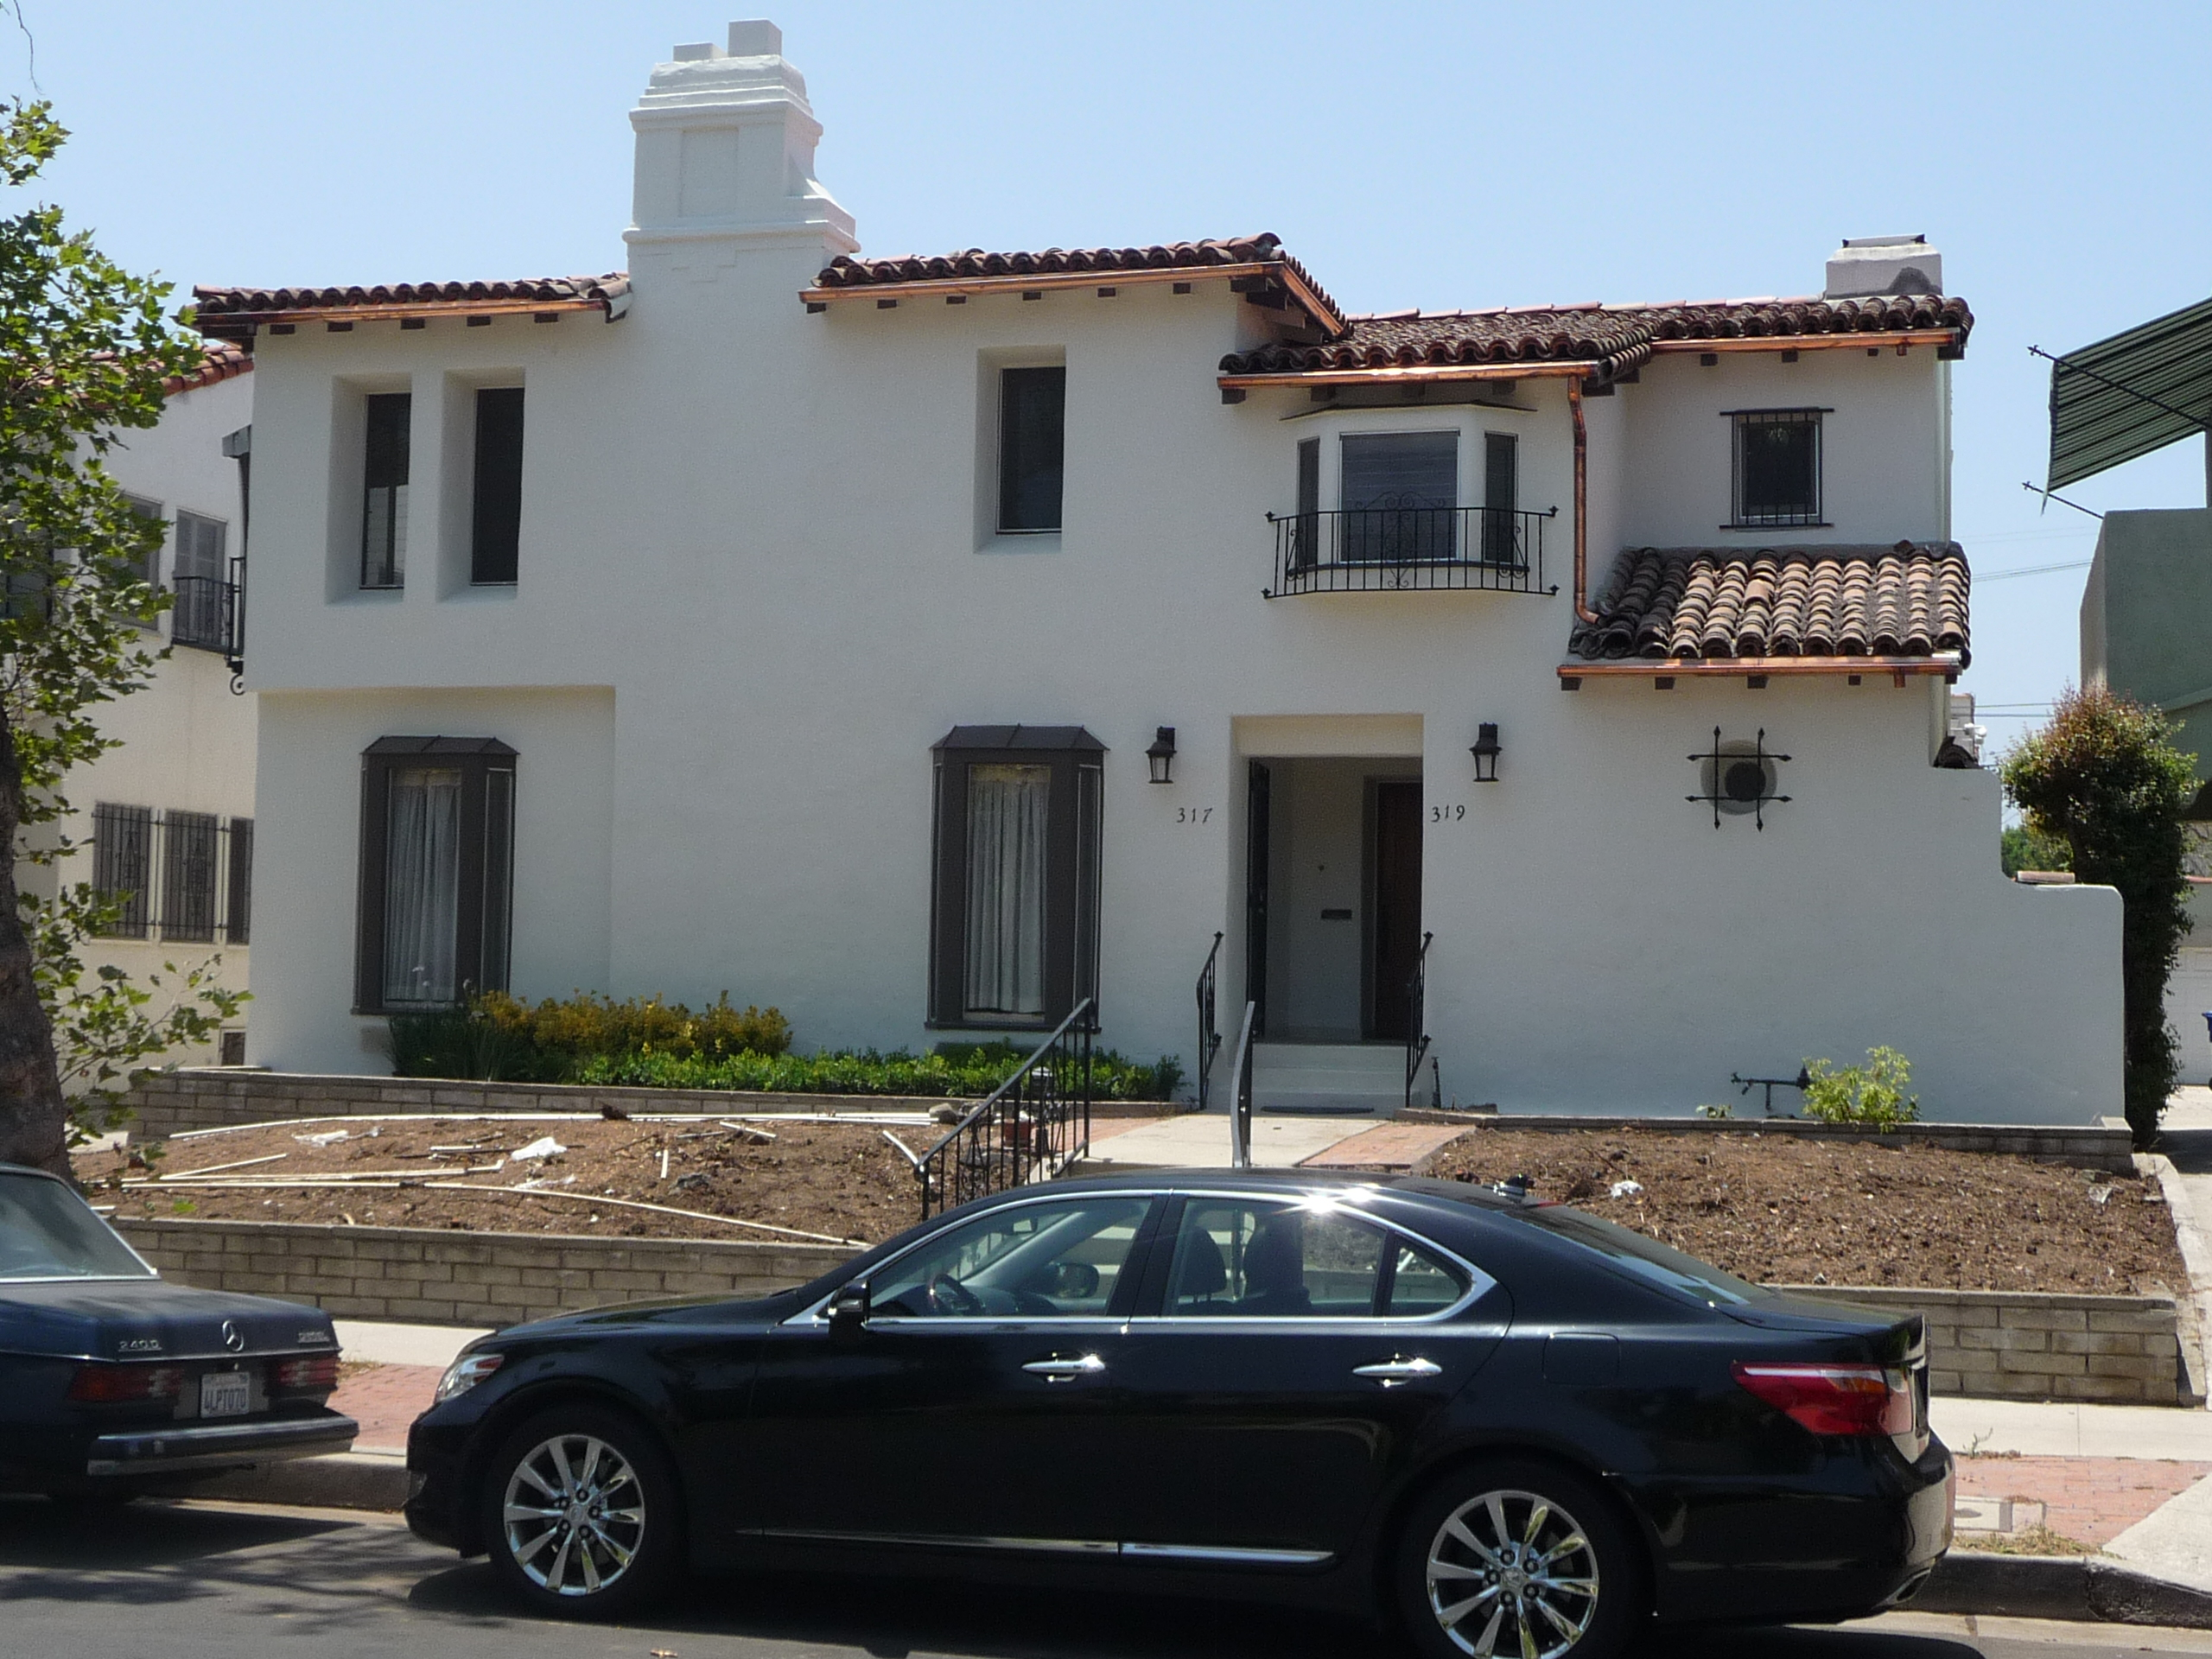 319 N MANSFIELD AVE - PHOTO